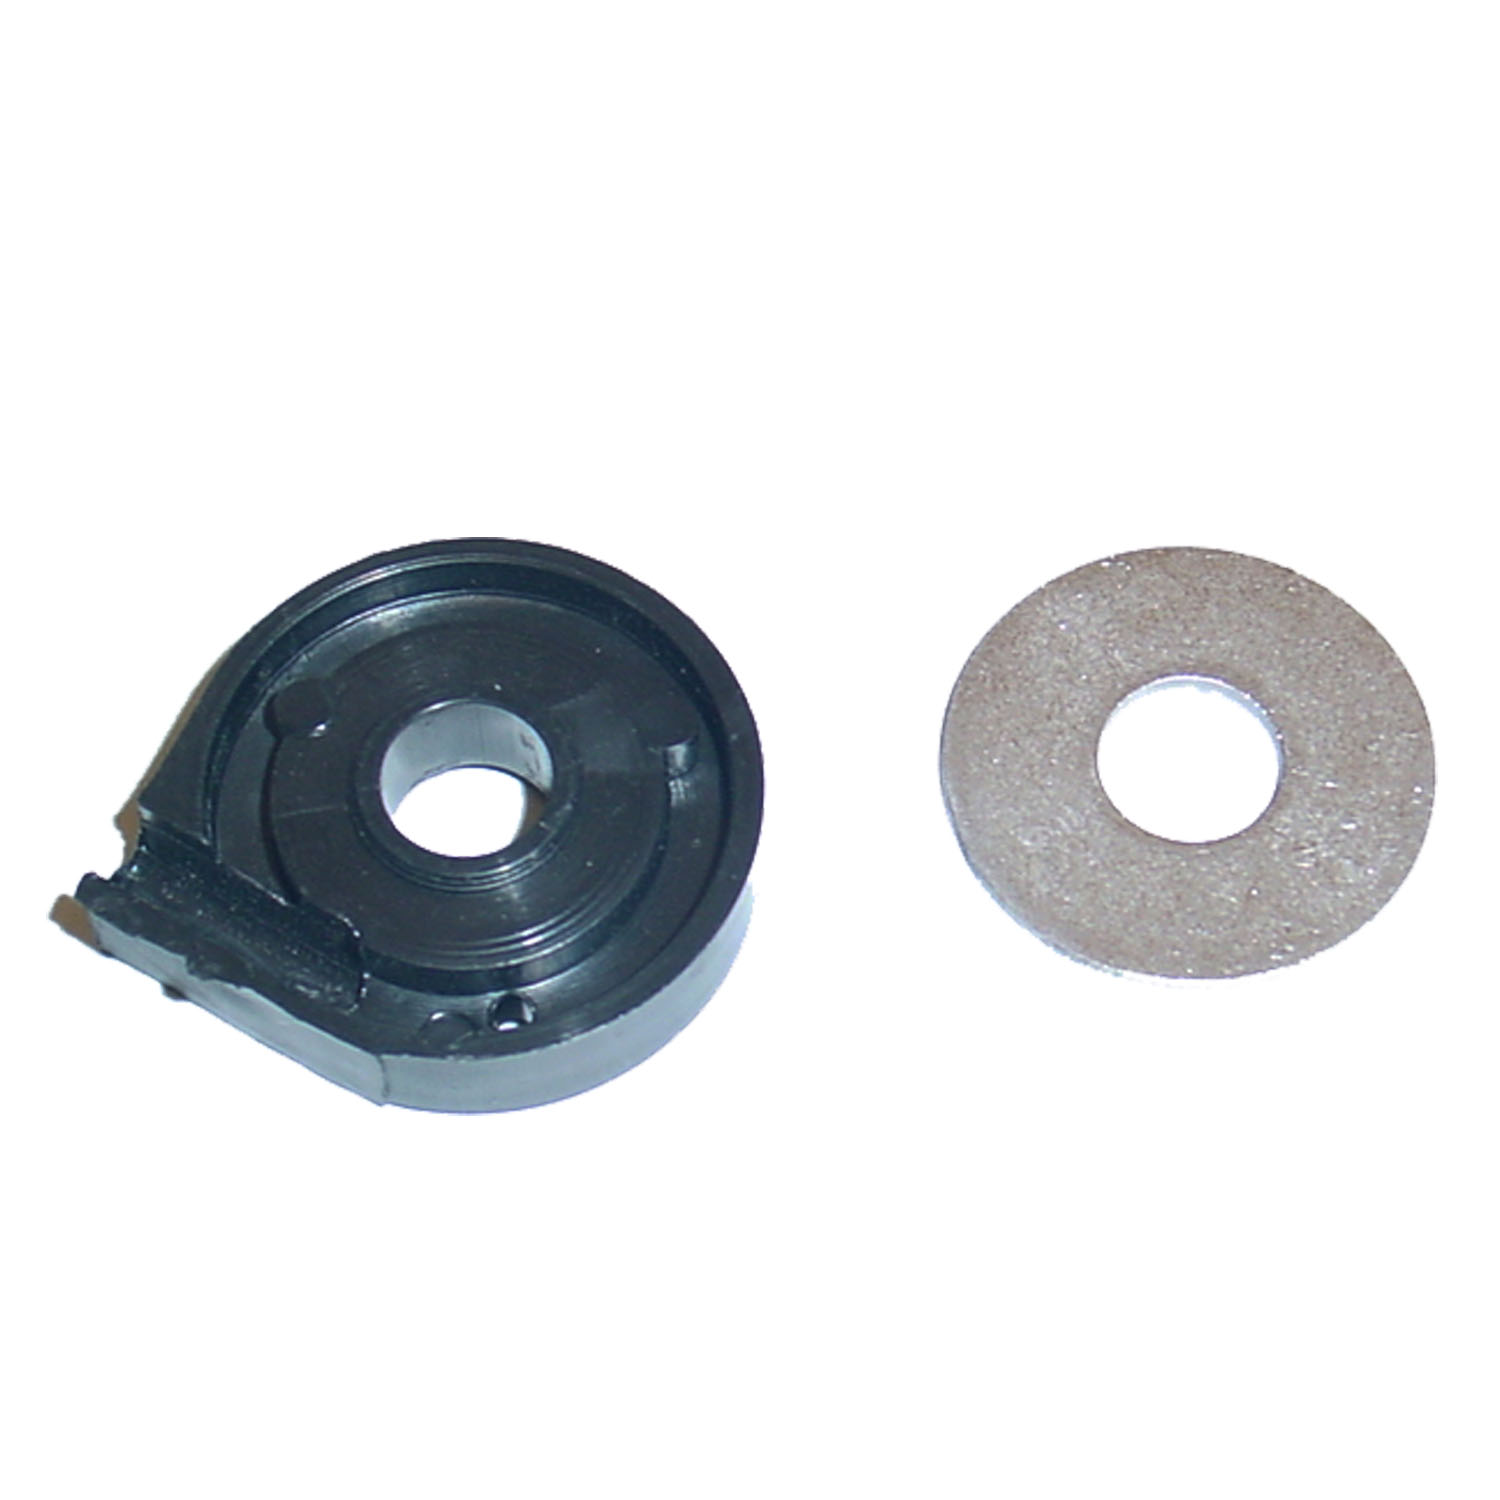 WAF1KT - ProComm Wafer Mount for RG58 Coax Cable